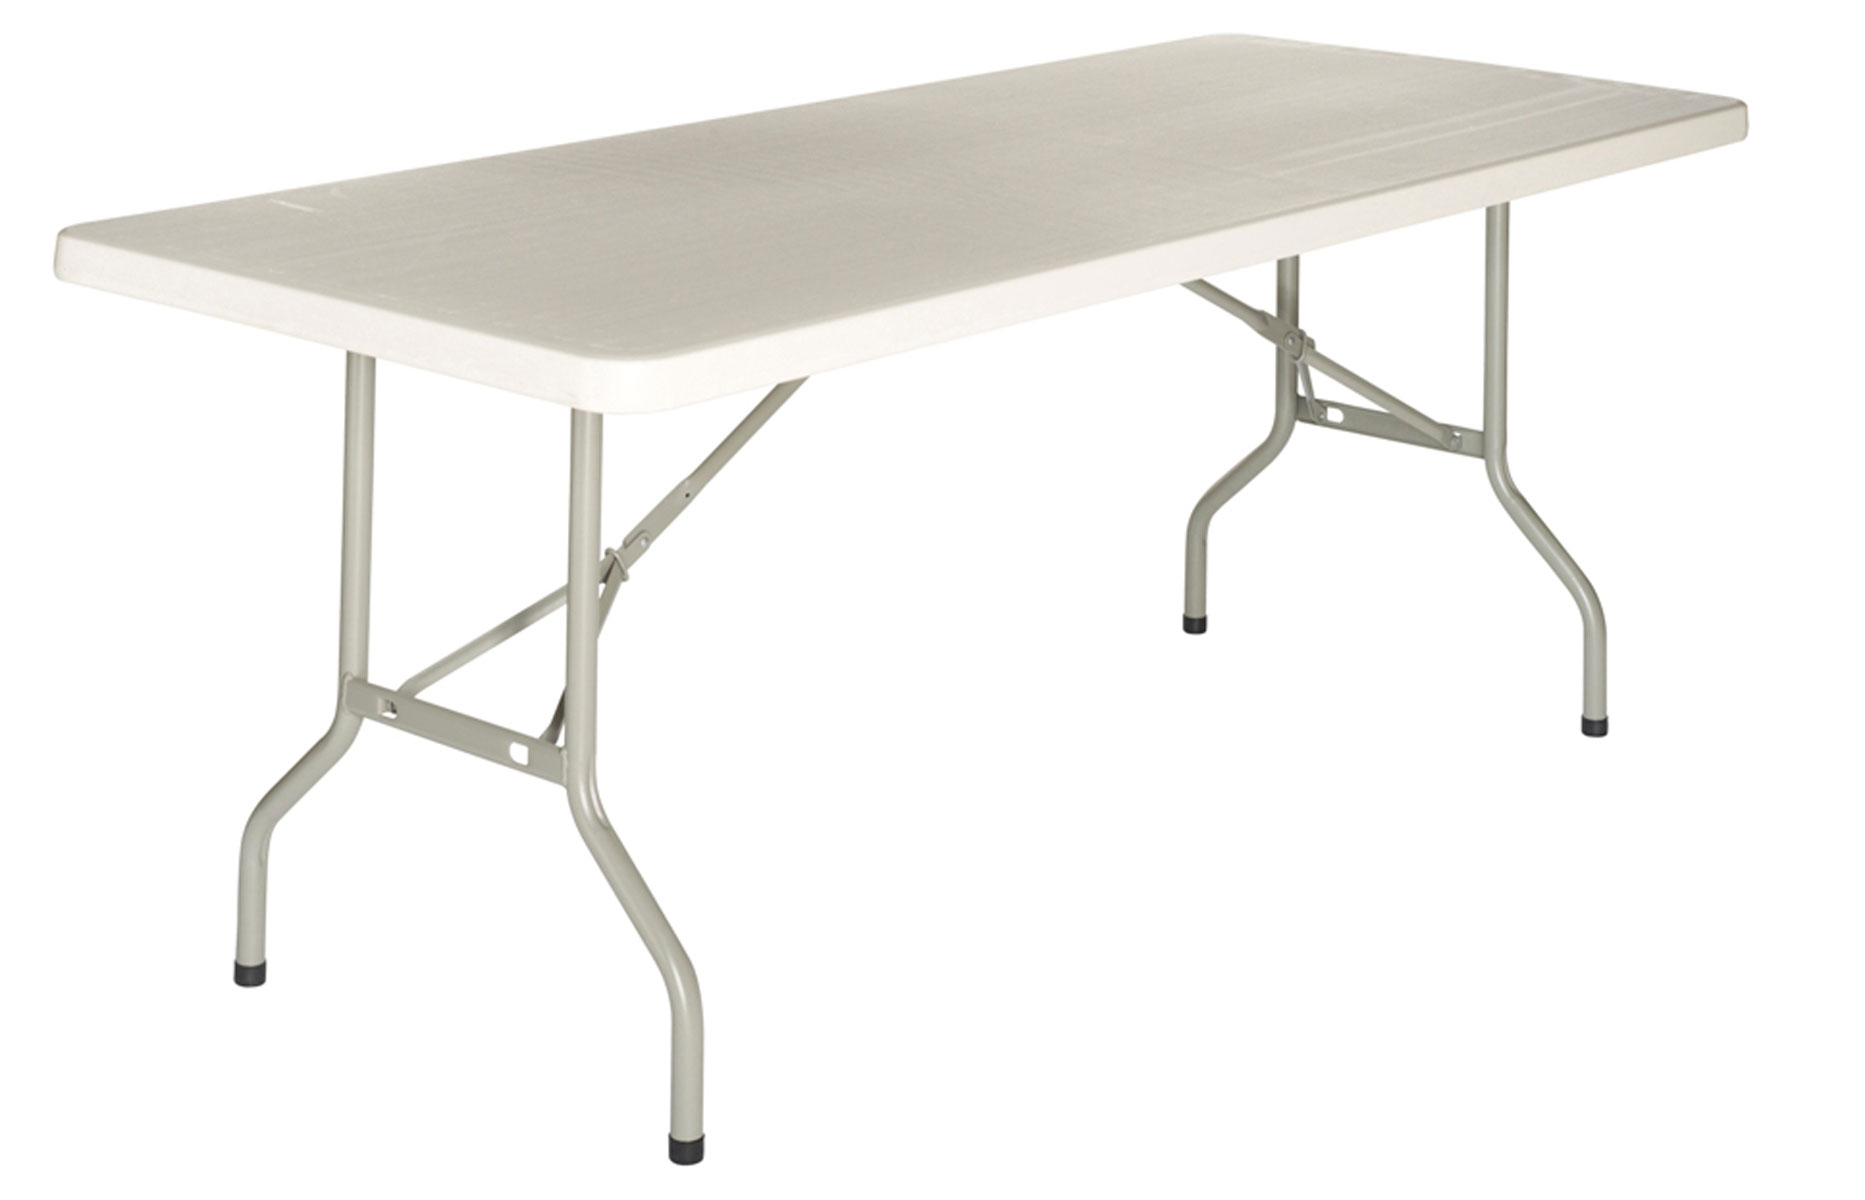 Table rabattable cuisine paris table pliante pas cher - Table massage pas cher ...